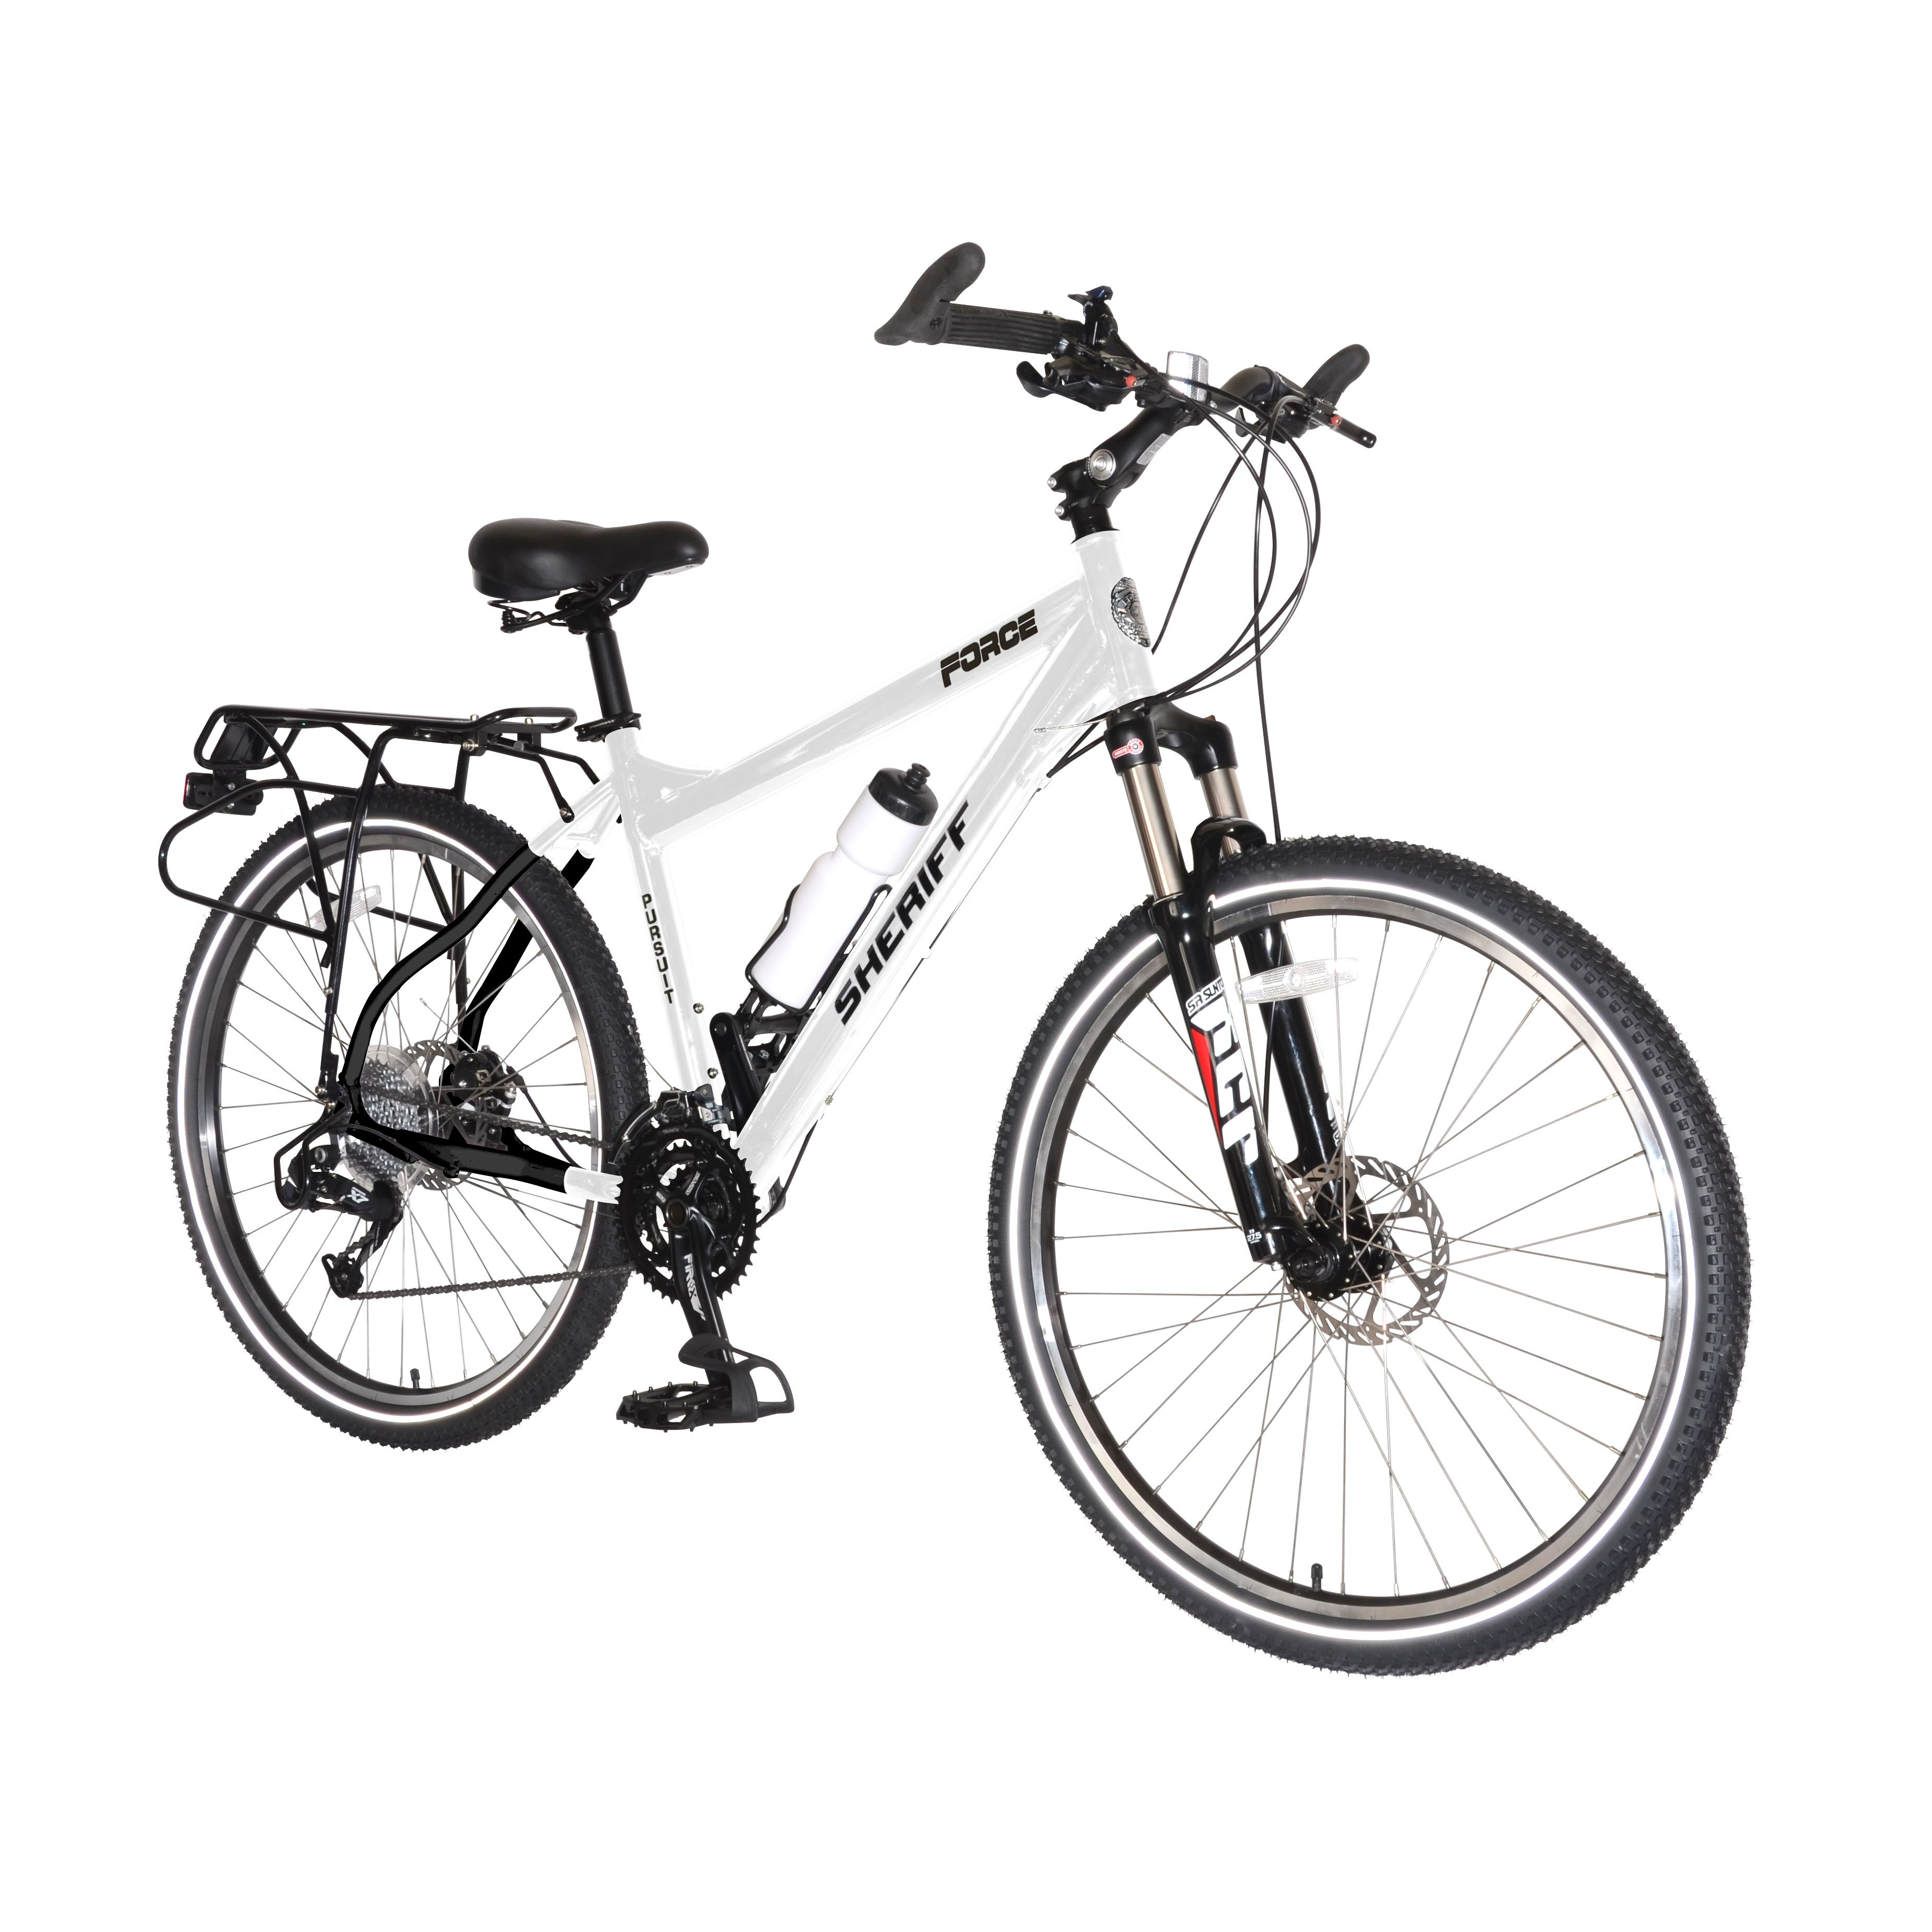 police mountain bikes Listing of police mountain bikes available for your department.